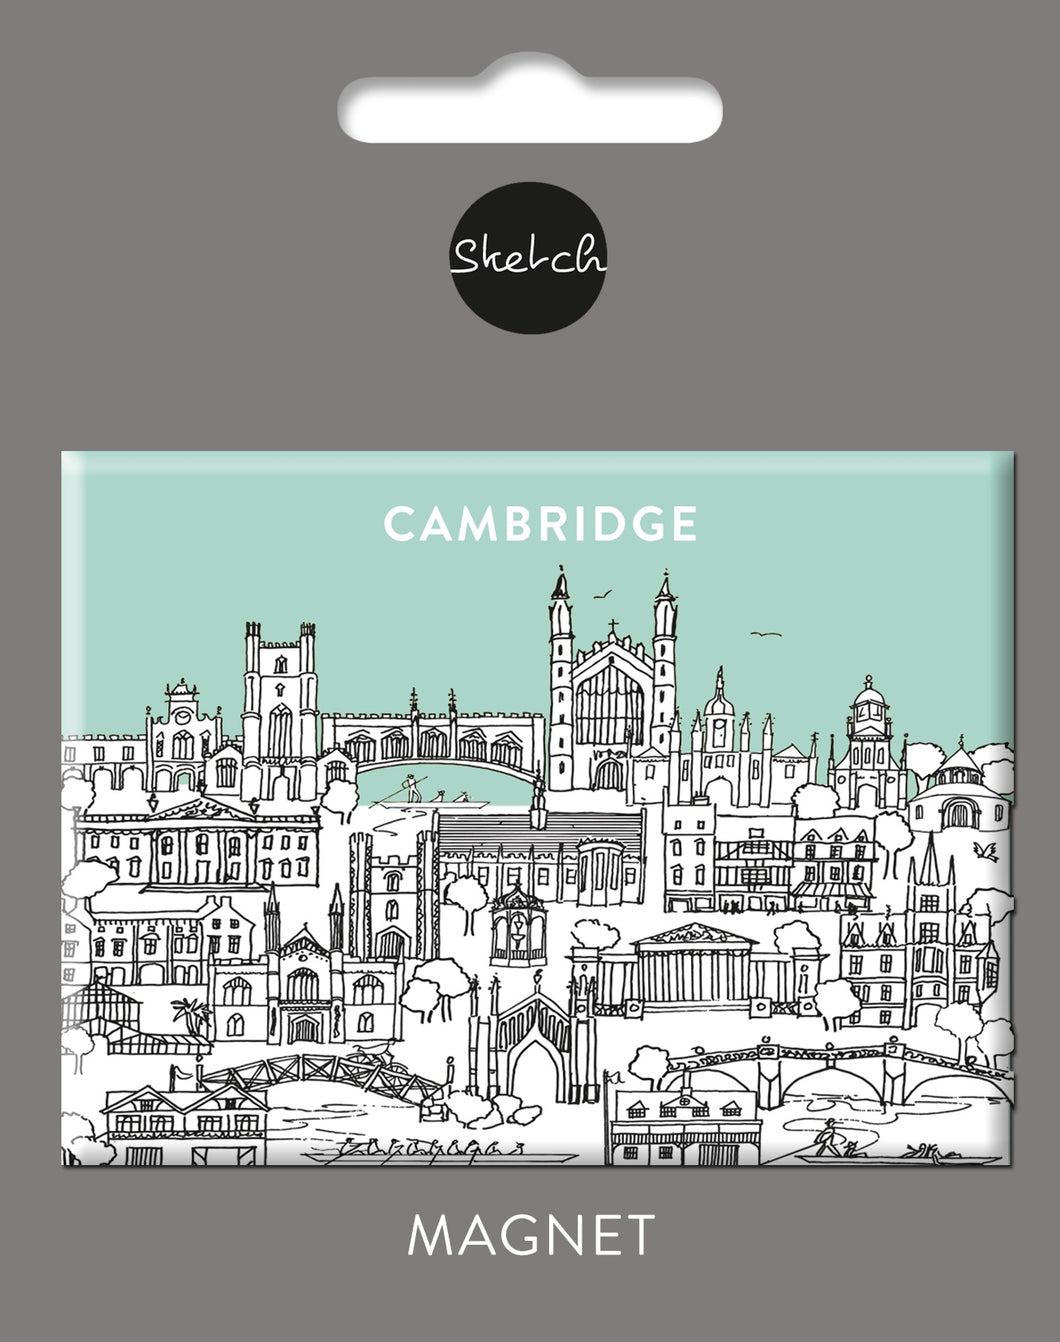 Sketch Cambridge Large Magnet